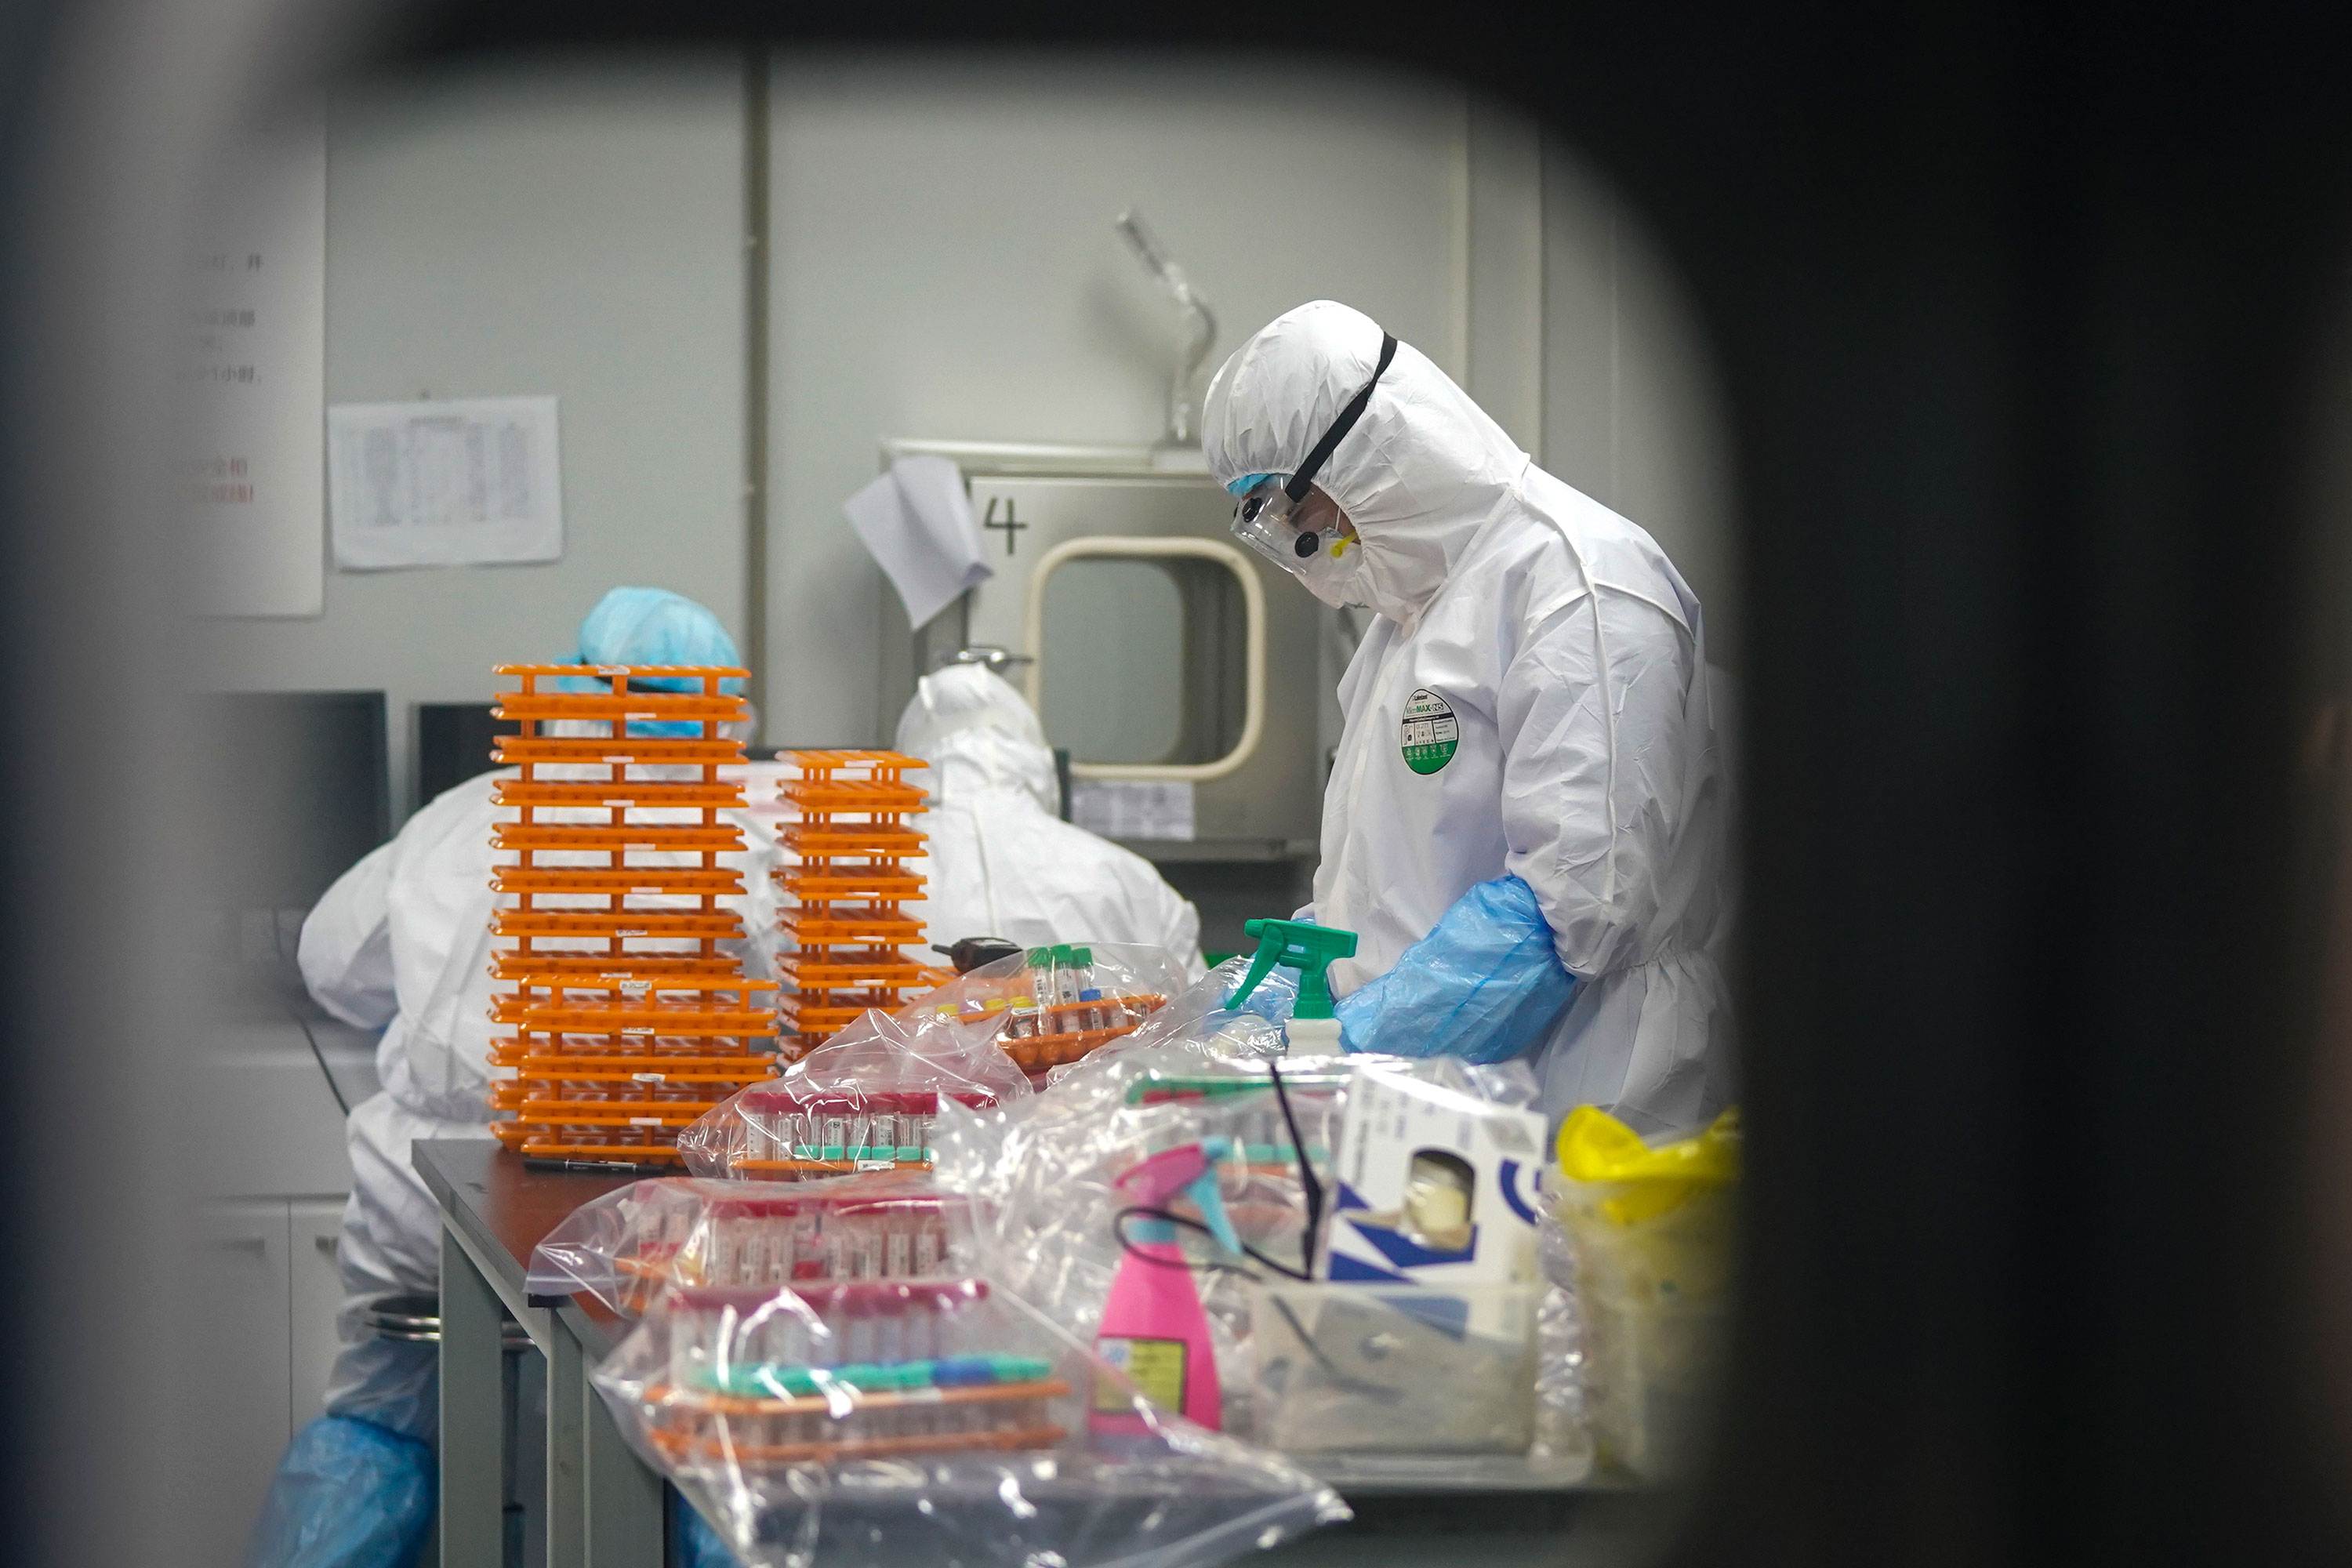 Medical workers at a coronavirus detection lab in Wuhan, China on February 22.